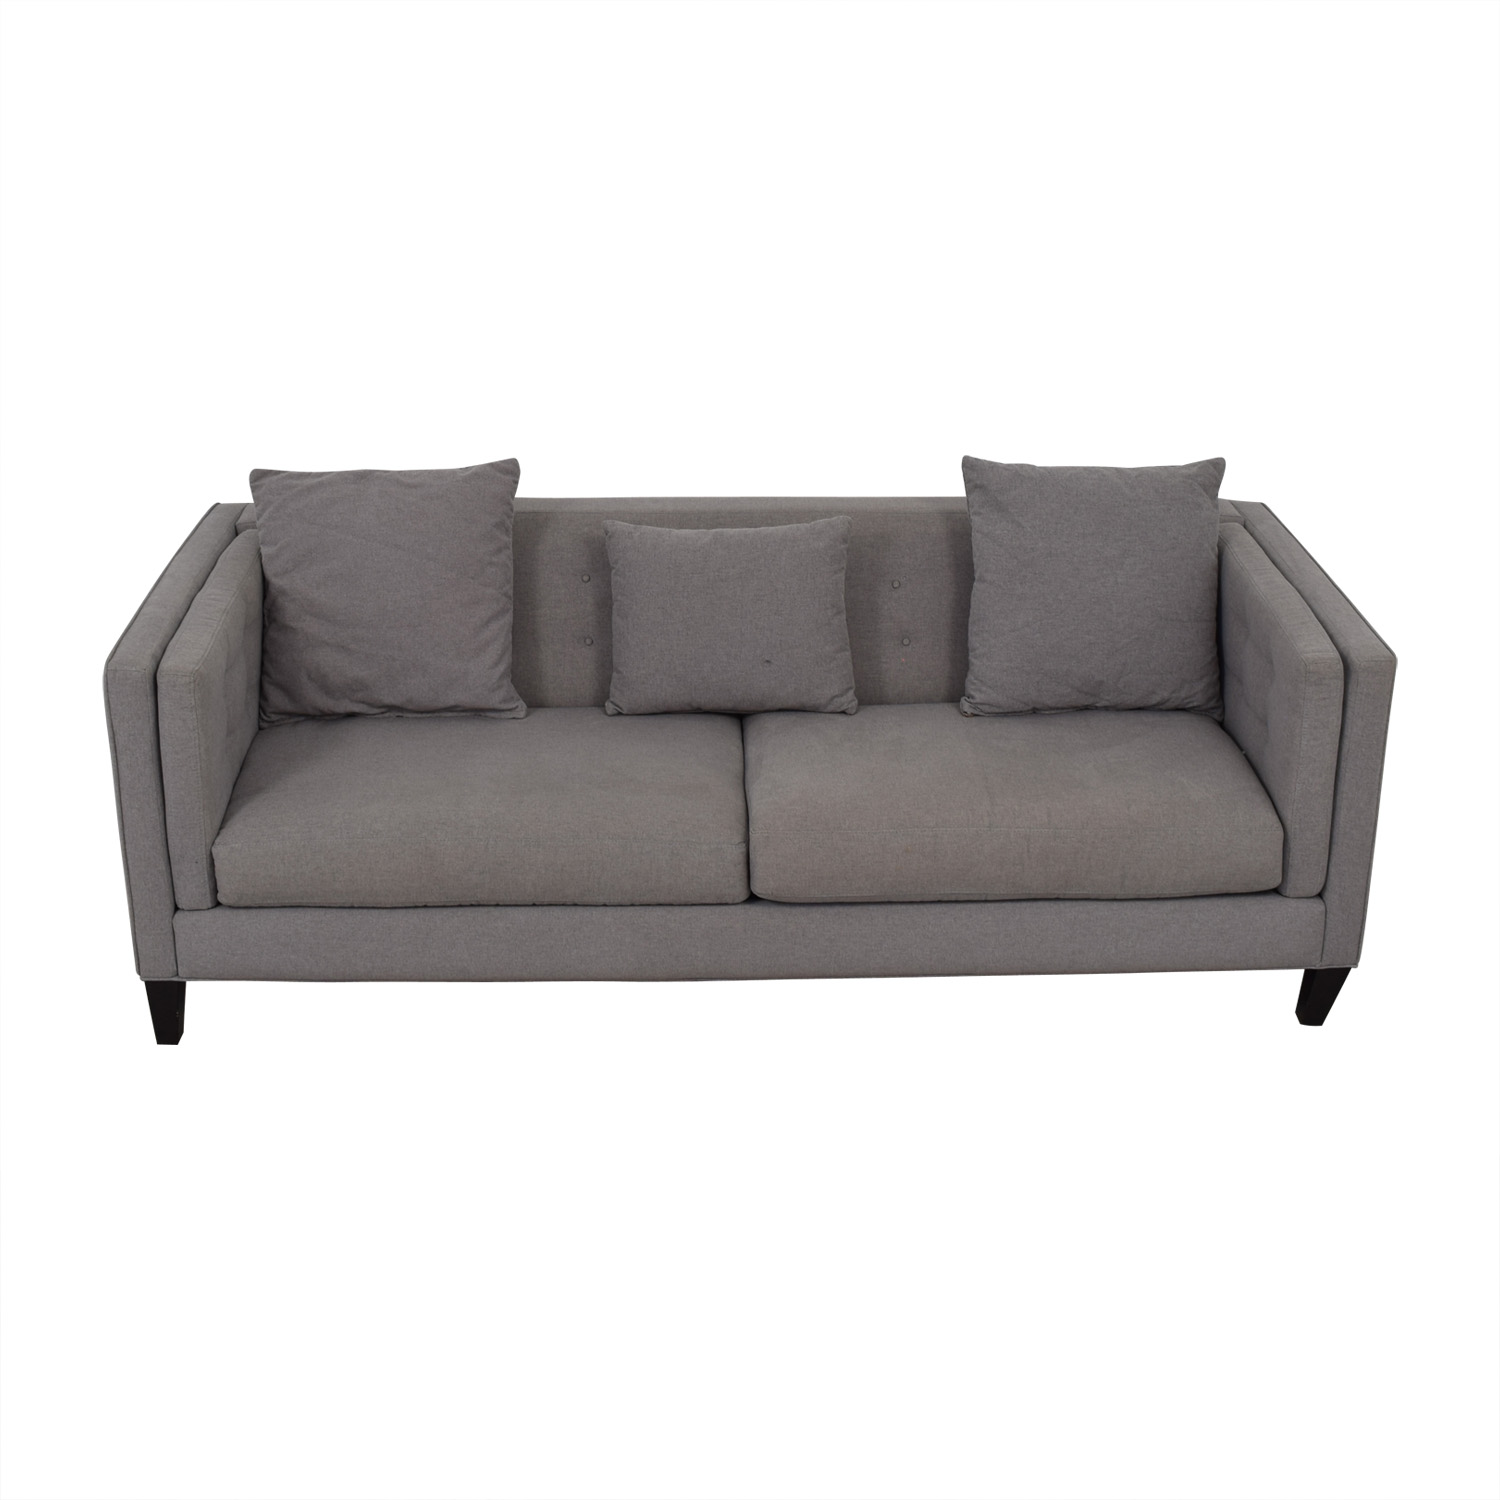 buy Jonathan Lewis Jonathan Lewis Grey Two-Cushion Couch online